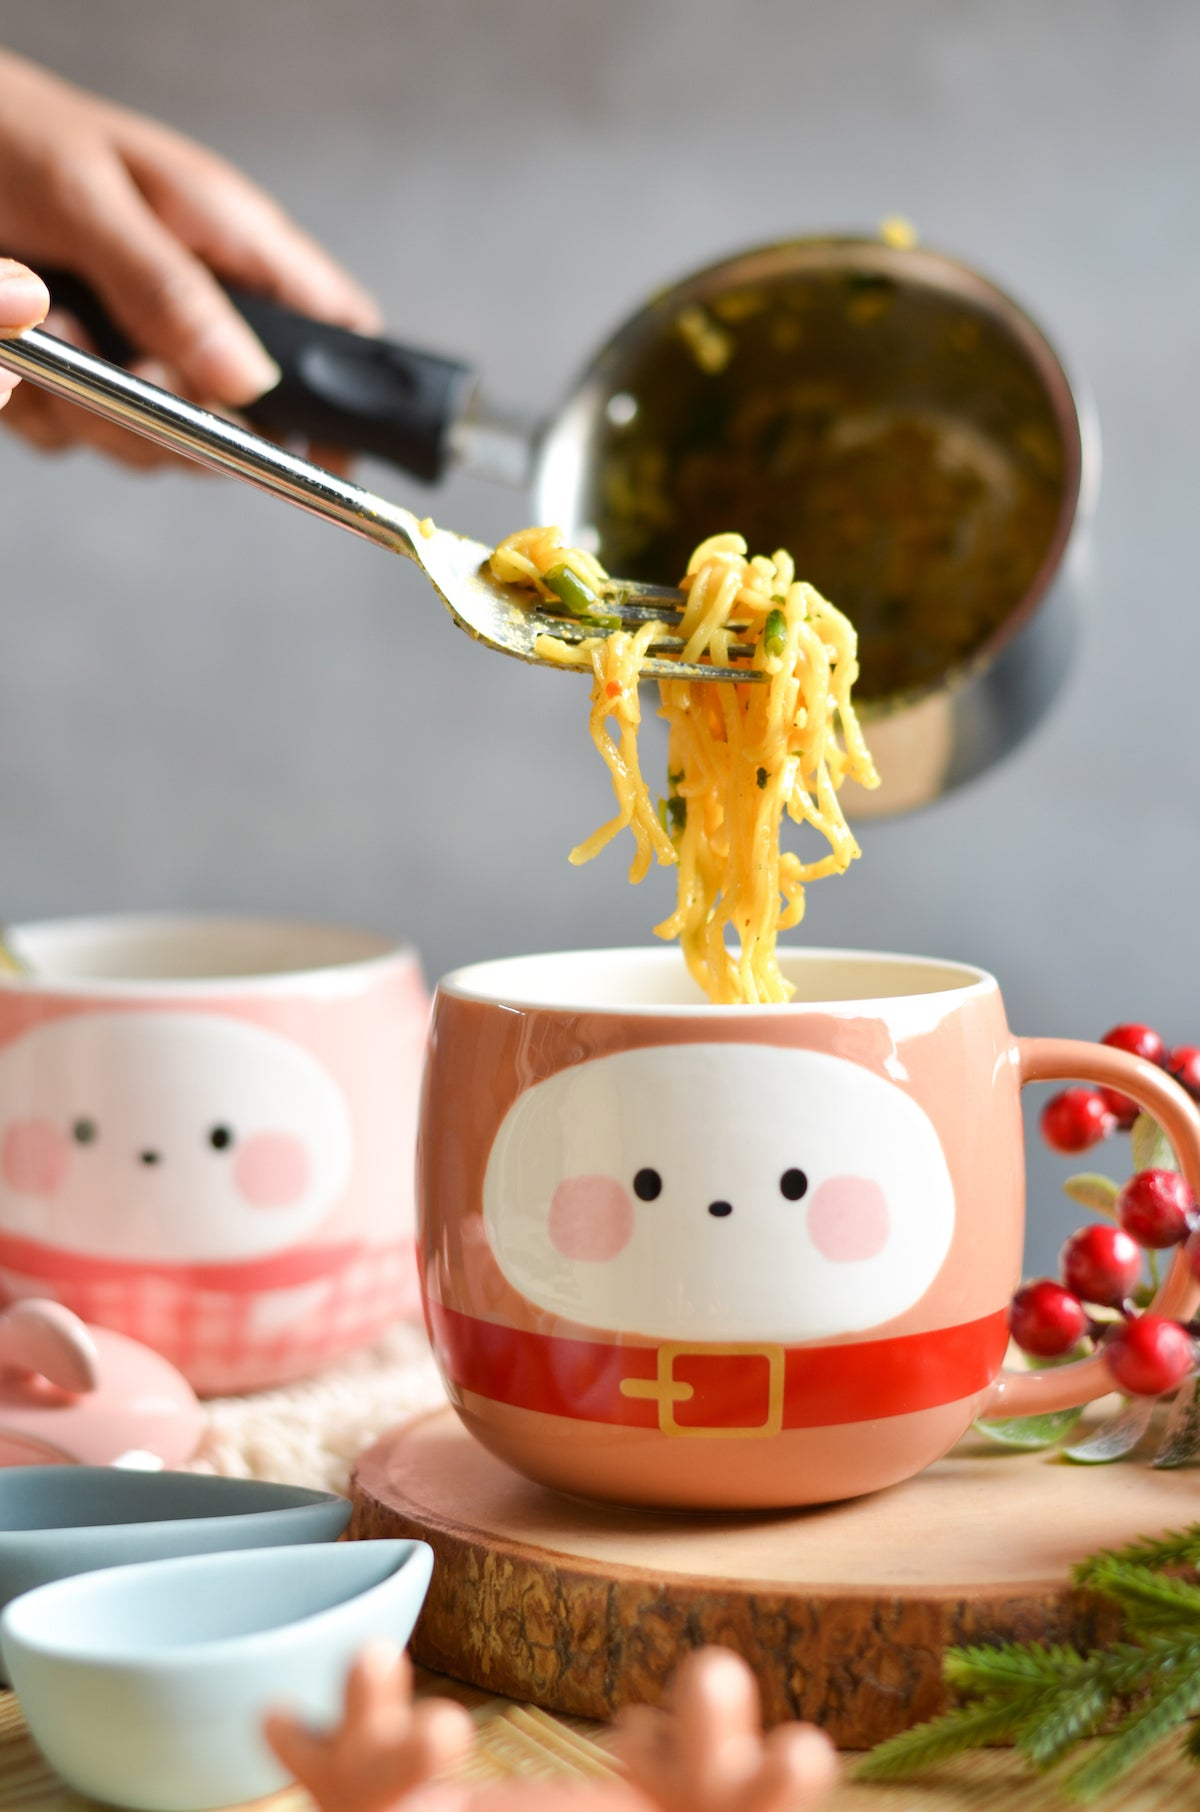 Noodles in Cup